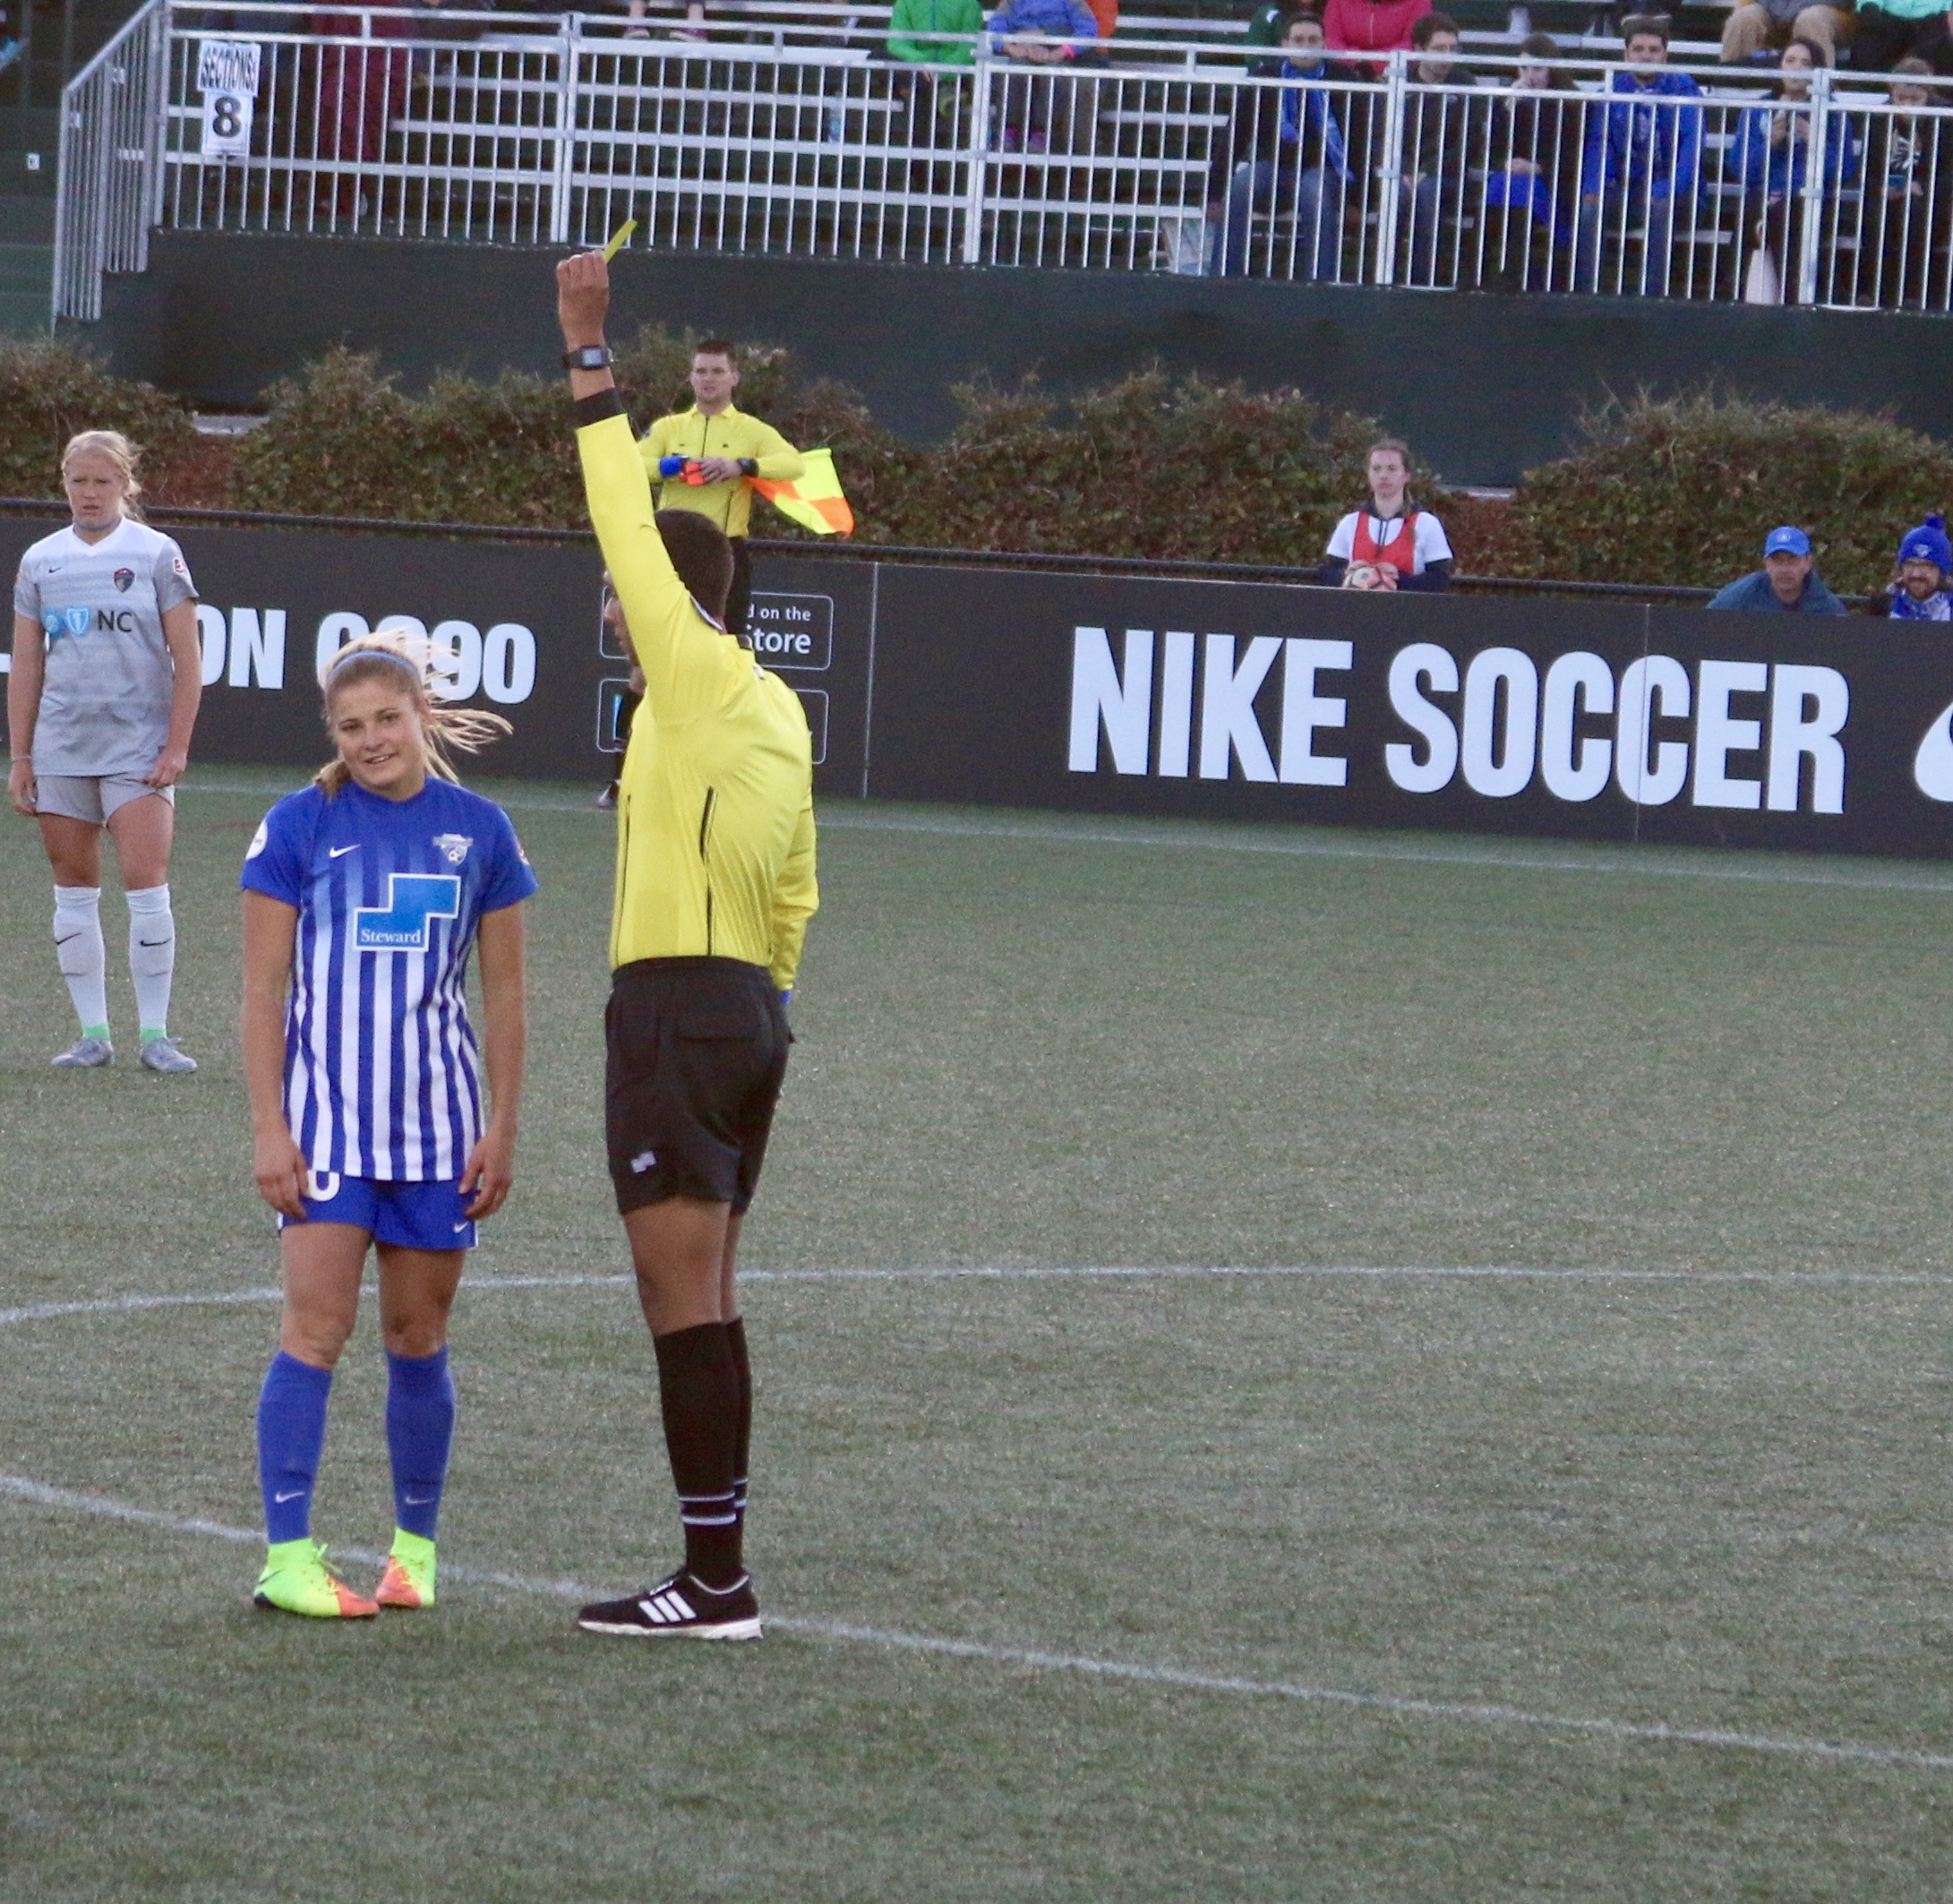 Rosie White, after fouling McCall Zerboni